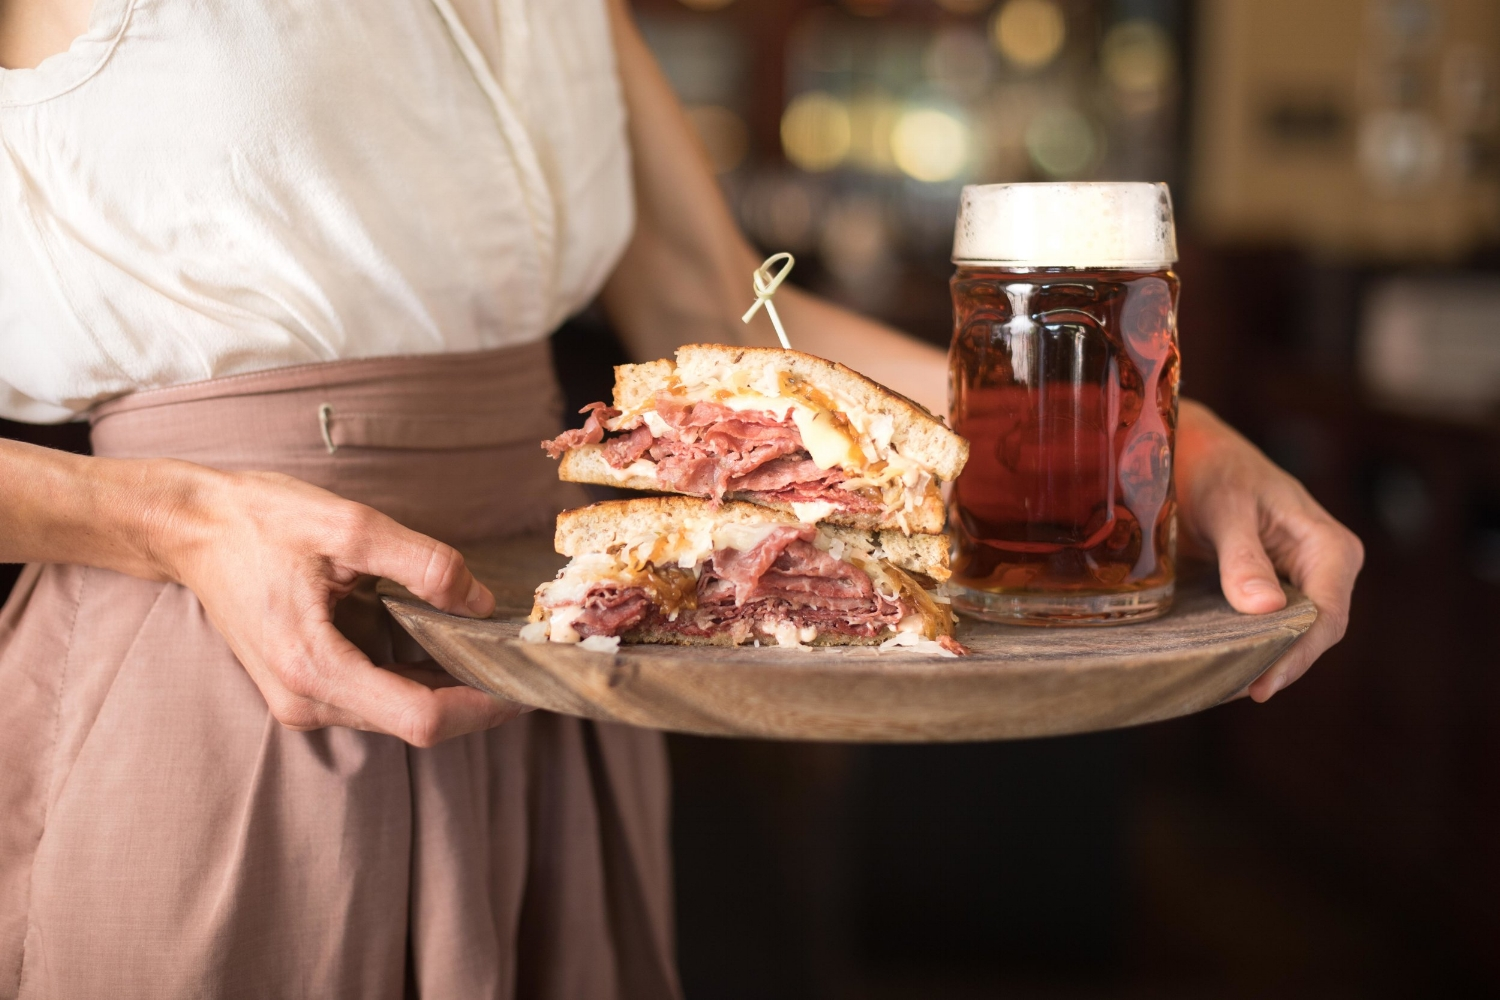 Jimena-Peck-Denver-Food-Photographer-Gordon-Biersch-Brewery-Pastrami-Sandwich